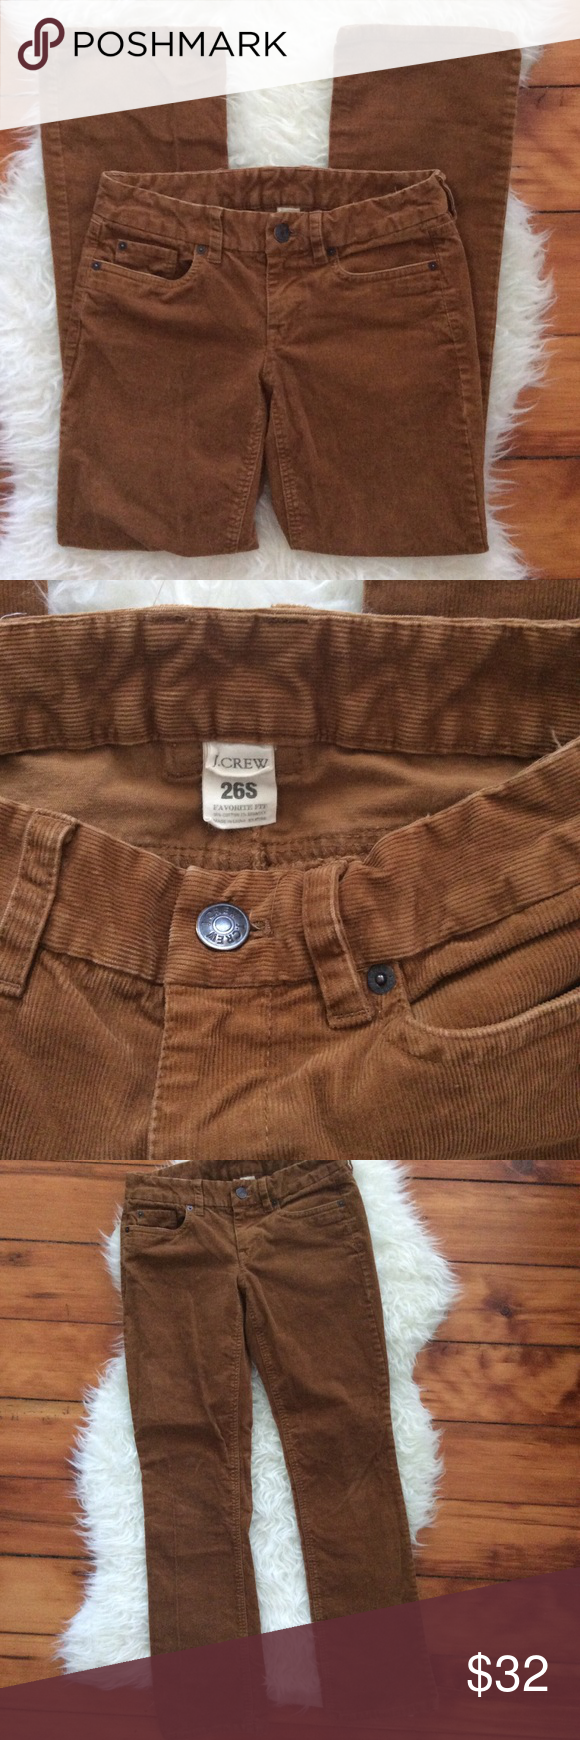 "J. Crew Chestnut Favorite Fit Corduroy Pants Excellent condition J. Crew chestnut brown Favorite Fit corduroy pants. Size 26S (short). Waistband 28"", rise 7.5"", inseam 30"", leg opening 16"". Slightly boot cut. 98% cotton, 2% spandex. Slightly stretchy. No trades, offers welcome. J. Crew Pants Straight Leg"